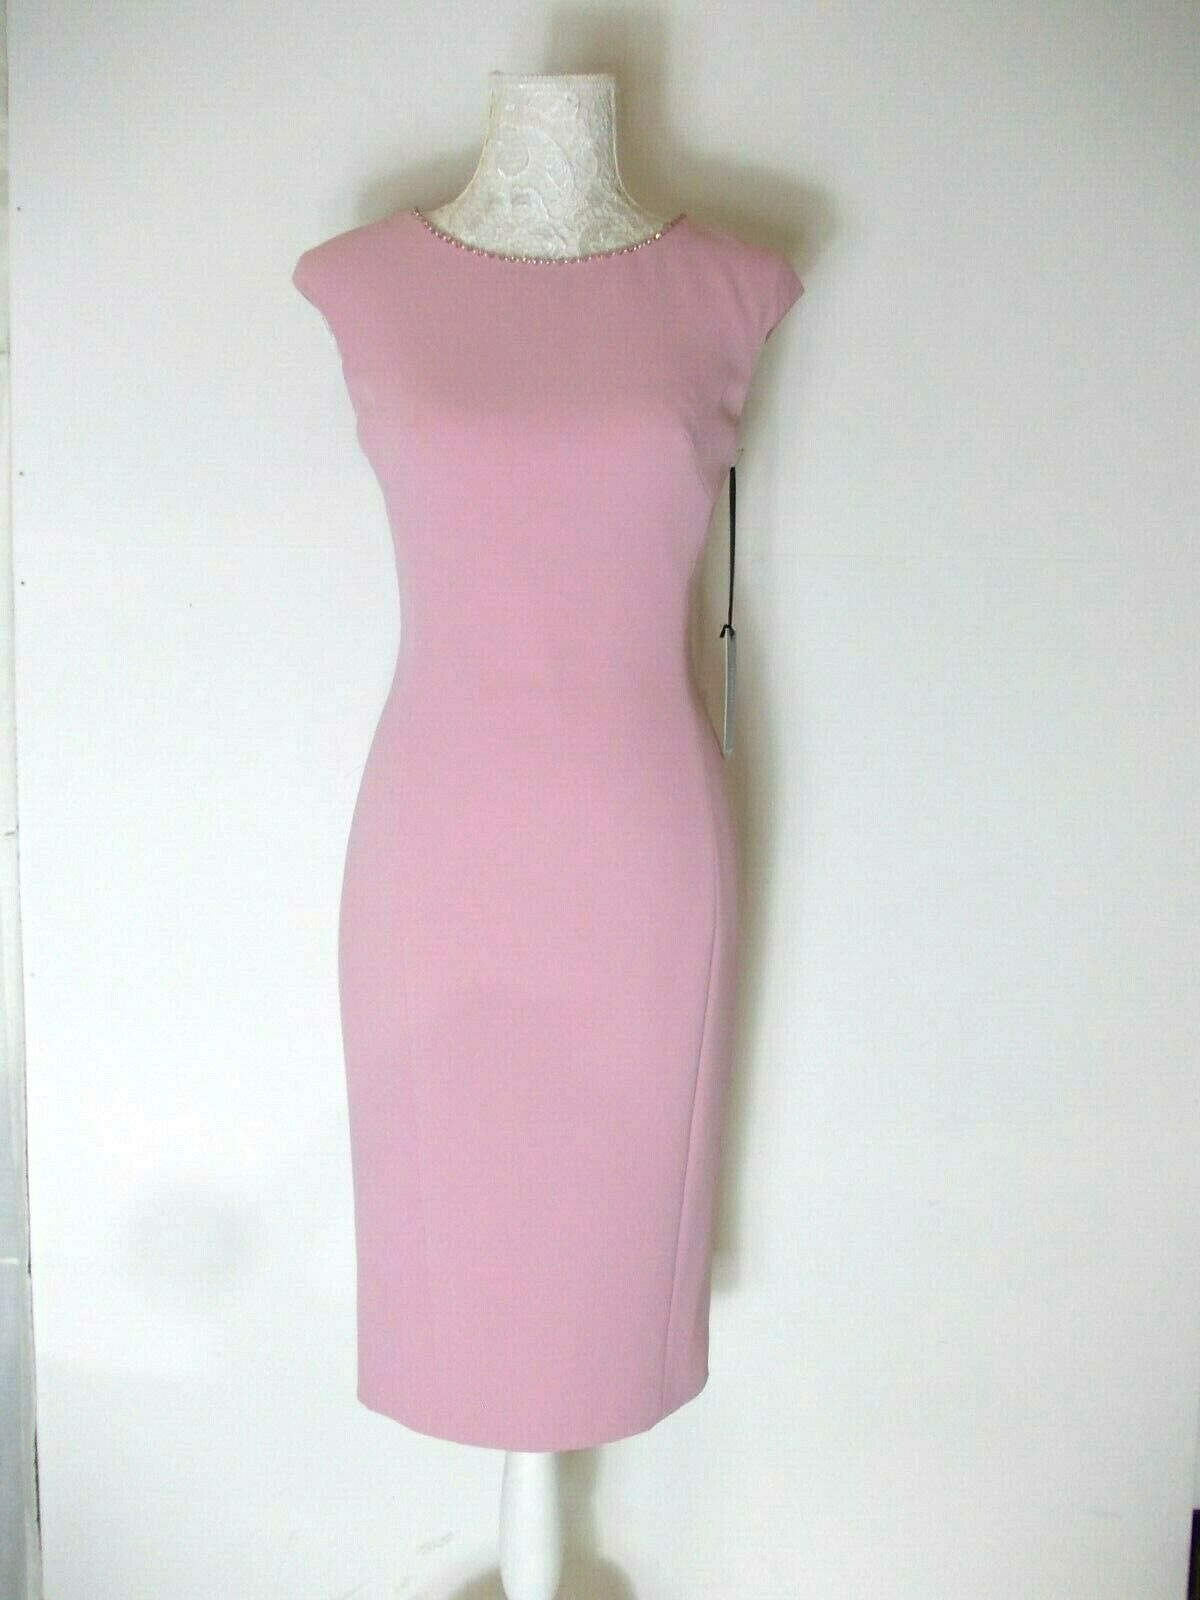 special occasion/mother of the bride dress & cape in pink size 6-8